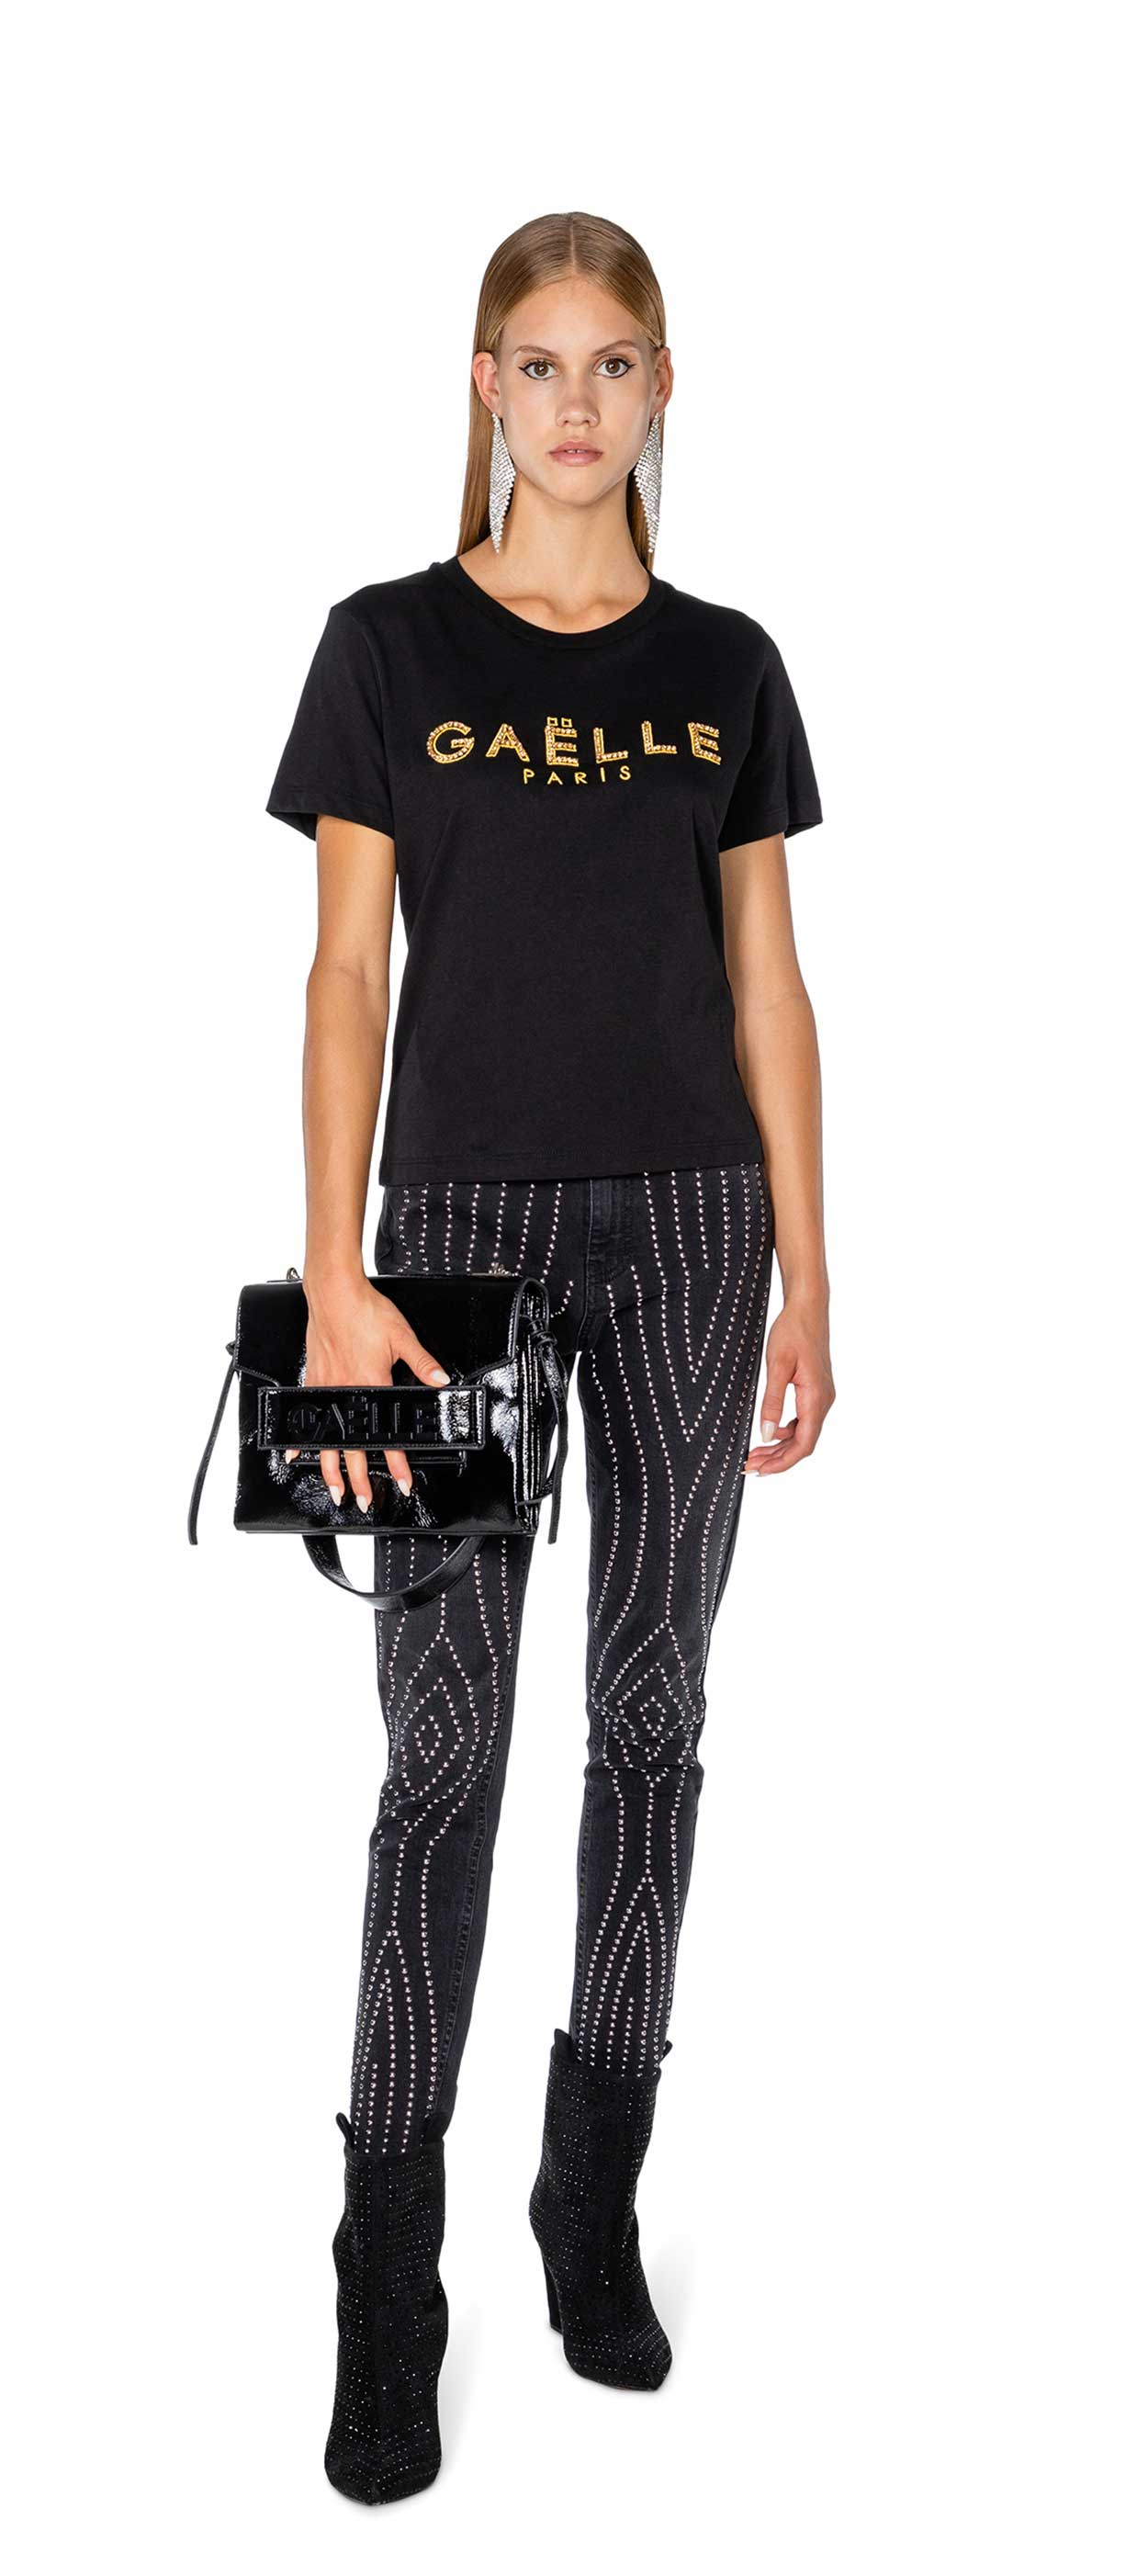 T-SHIRT - GBD8188 - GAELLE PARIS